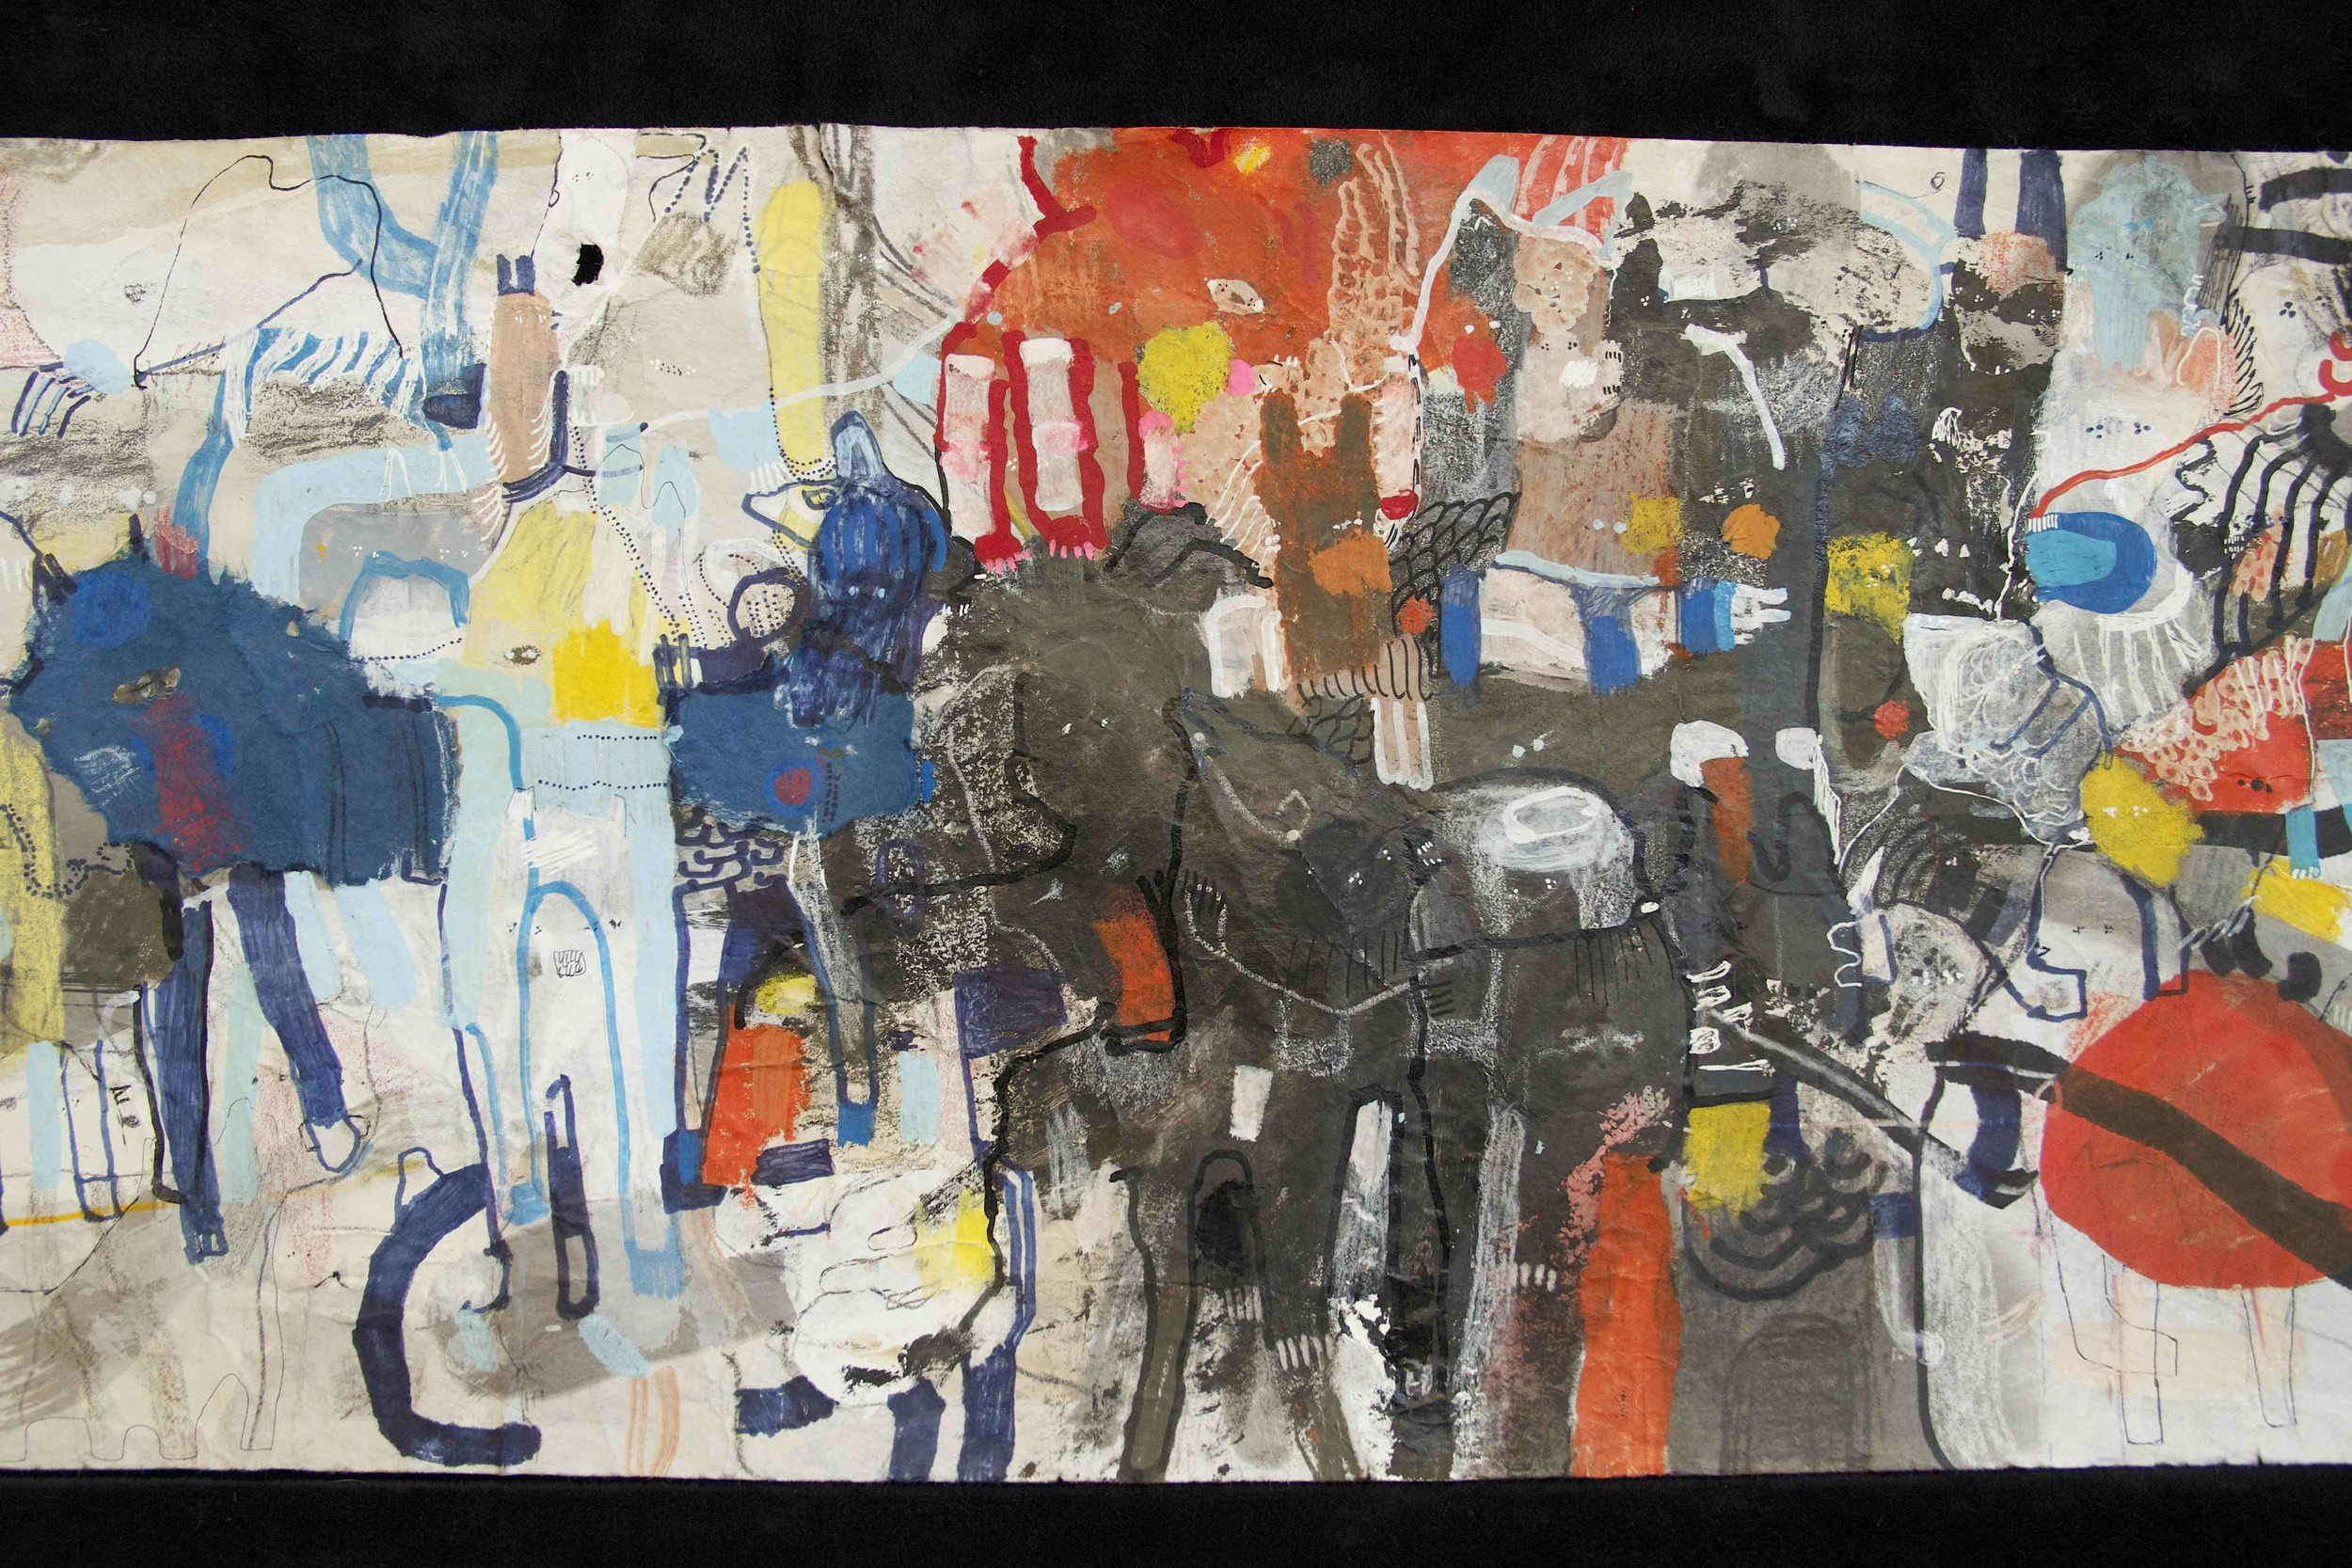 """[Detail no 19]  """"The Wind atop The Wood -Winds of Mount Meru Tangling Threads of Rainbow atop the Wood -Scroll 8""""   11 inches x 60 feet  ink, watercolor, gouache, dye, lost & found paper, crayon and graphite on mulberry paper scroll  2015"""